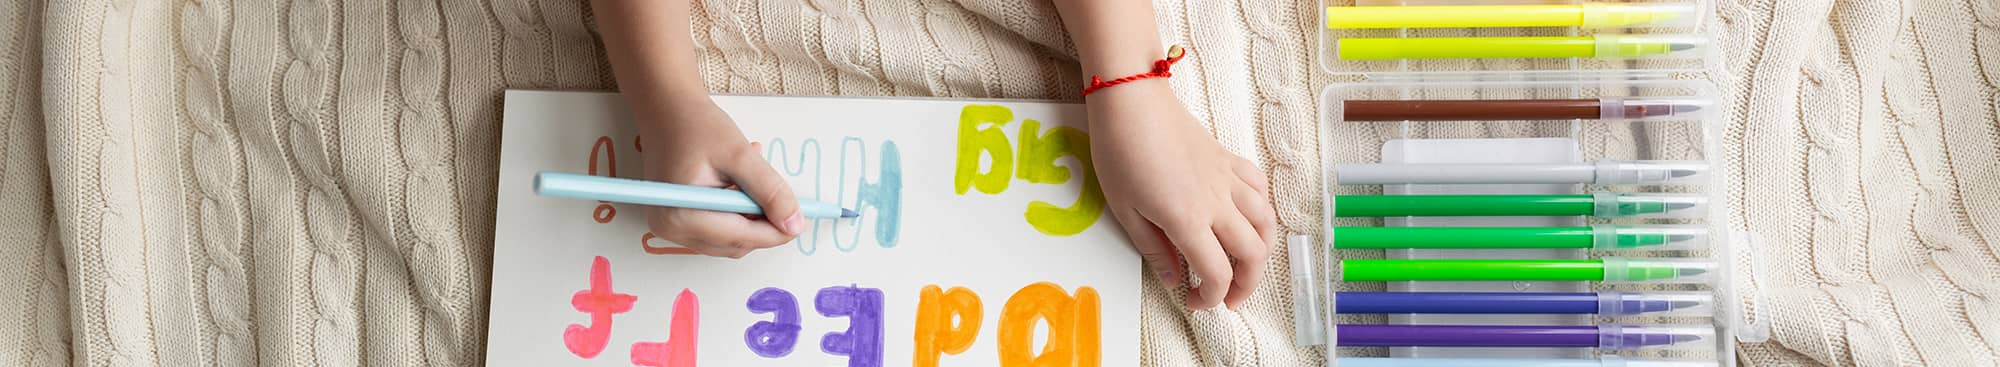 Child Coloring Alphabet Letters with Bright Markers